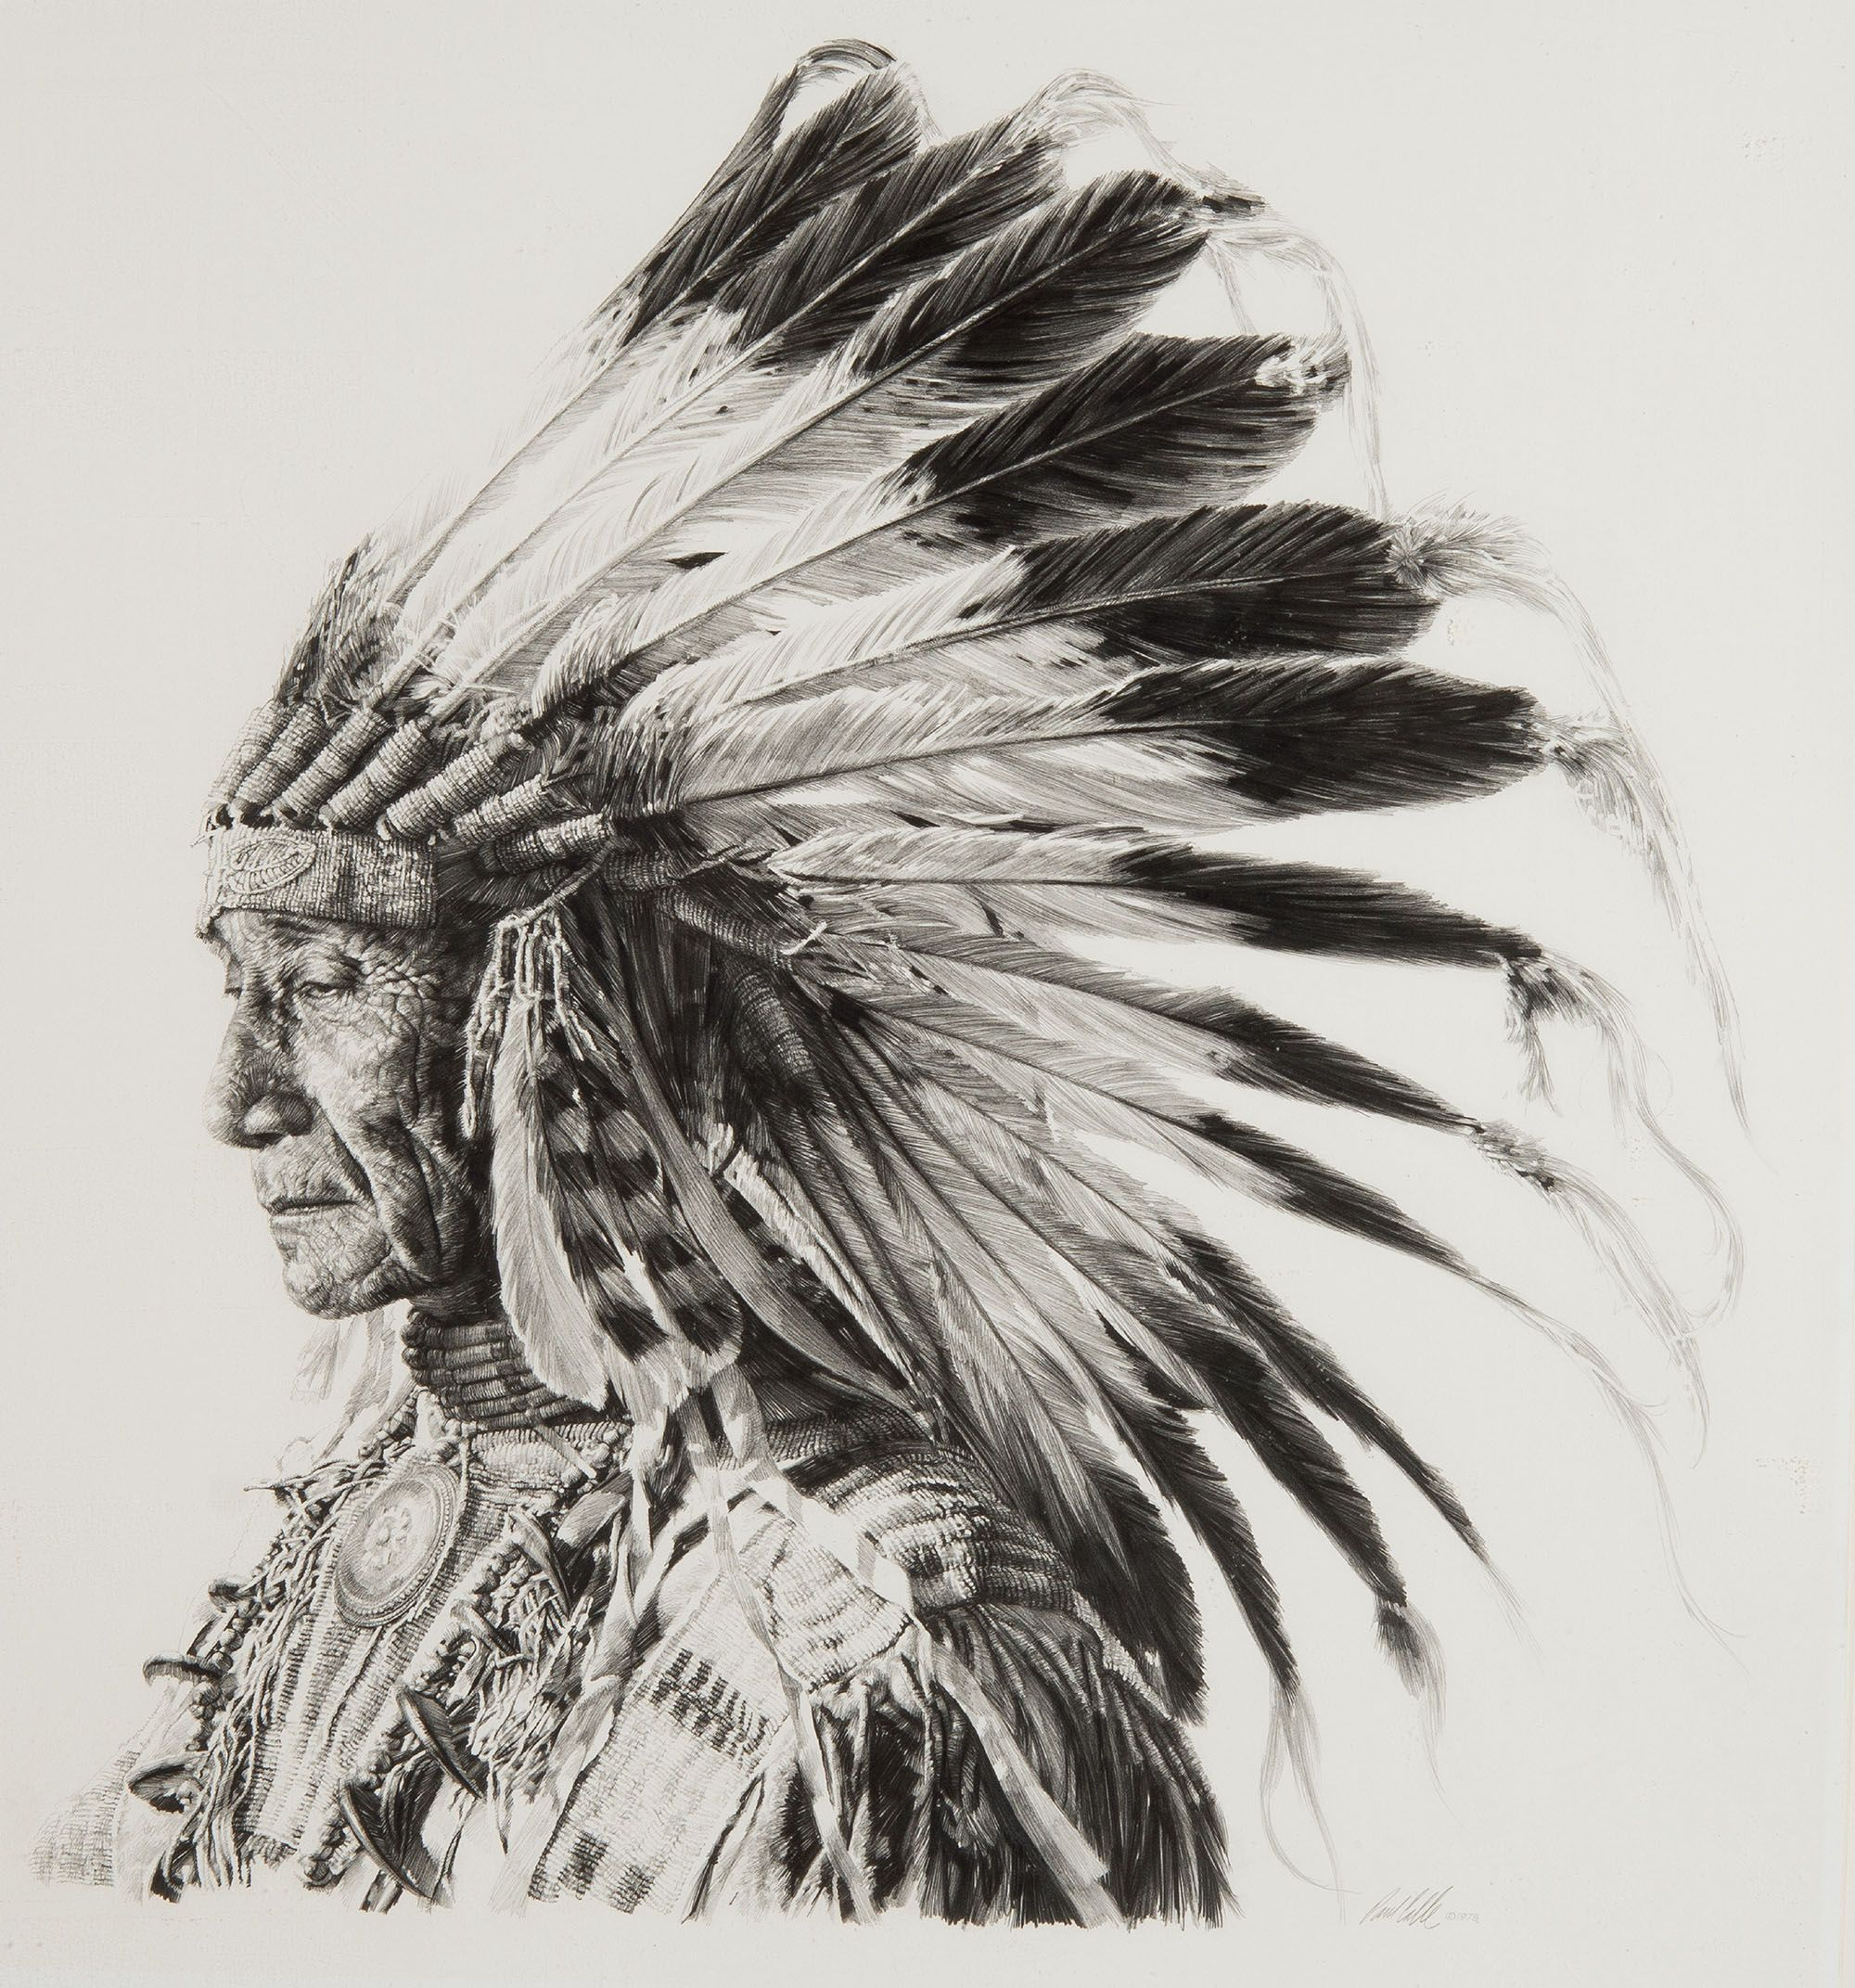 556561d7f Paul_Calle-Sioux, Indian_Chief | Drawings / Sketches / Preliminaries ...